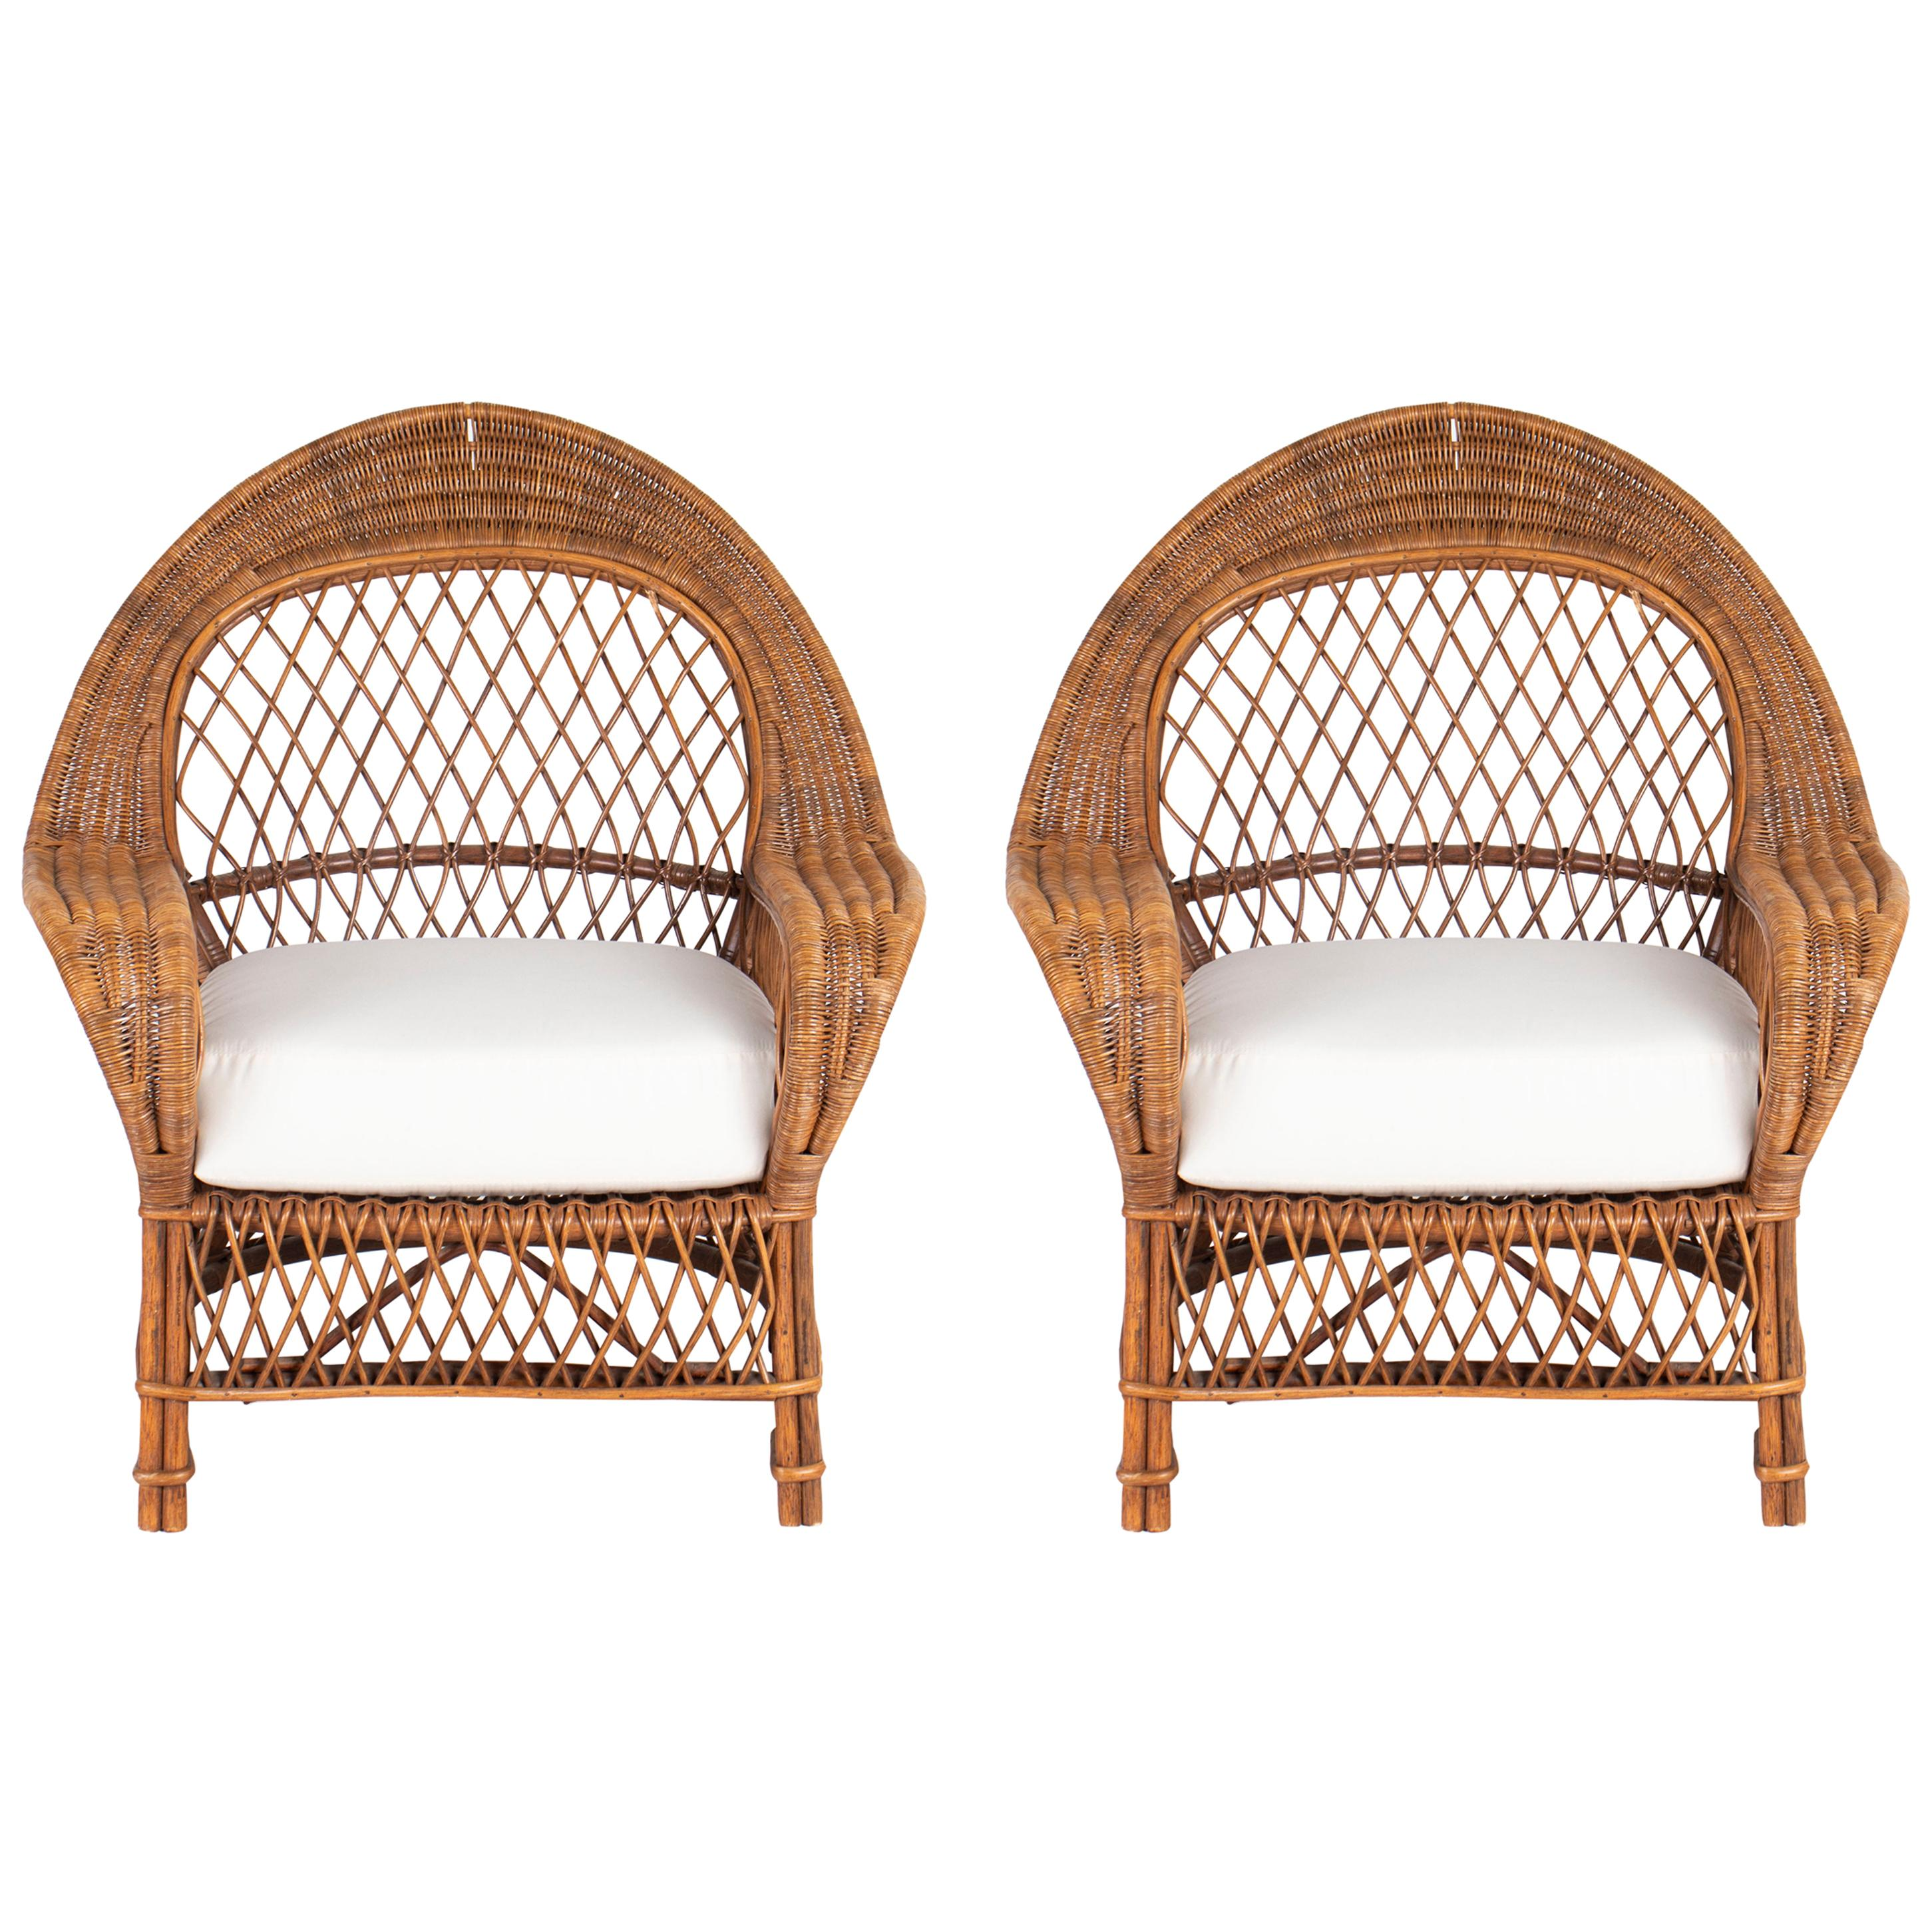 Pair of Generously Scaled Danish Rattan Chairs